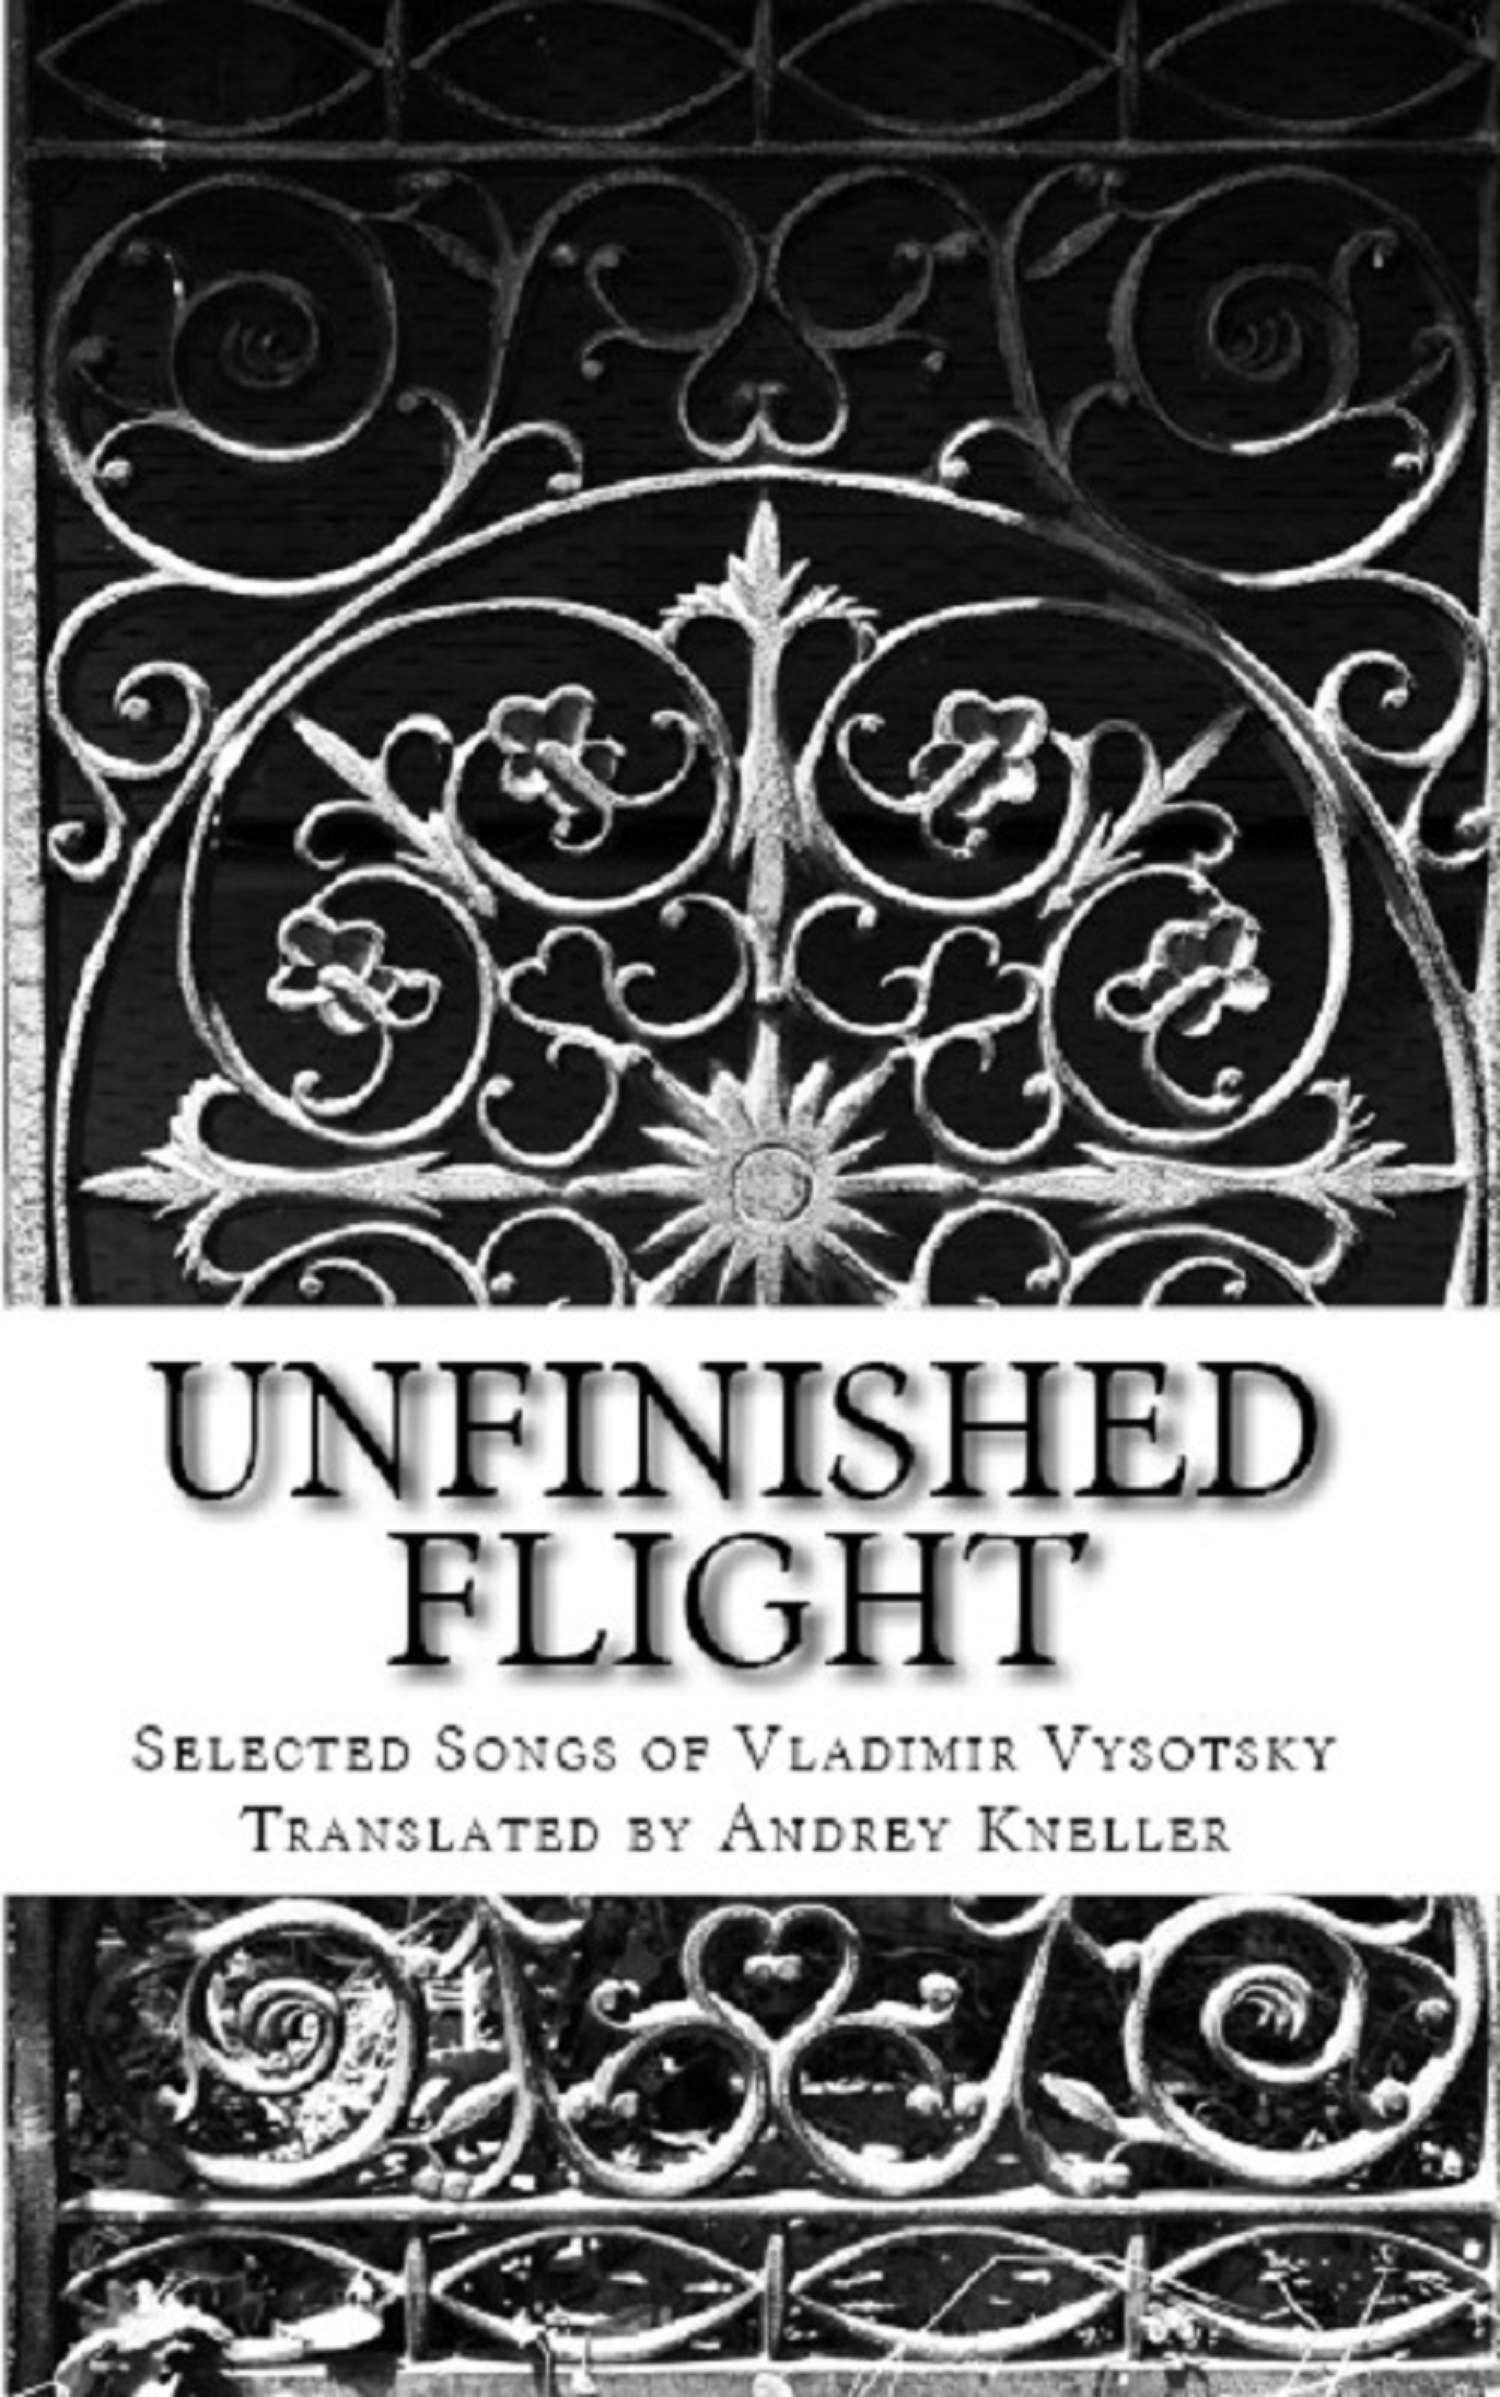 Andrey Kneller - Unfinished Flight: Selected Songs of Vladimir Vysotsky